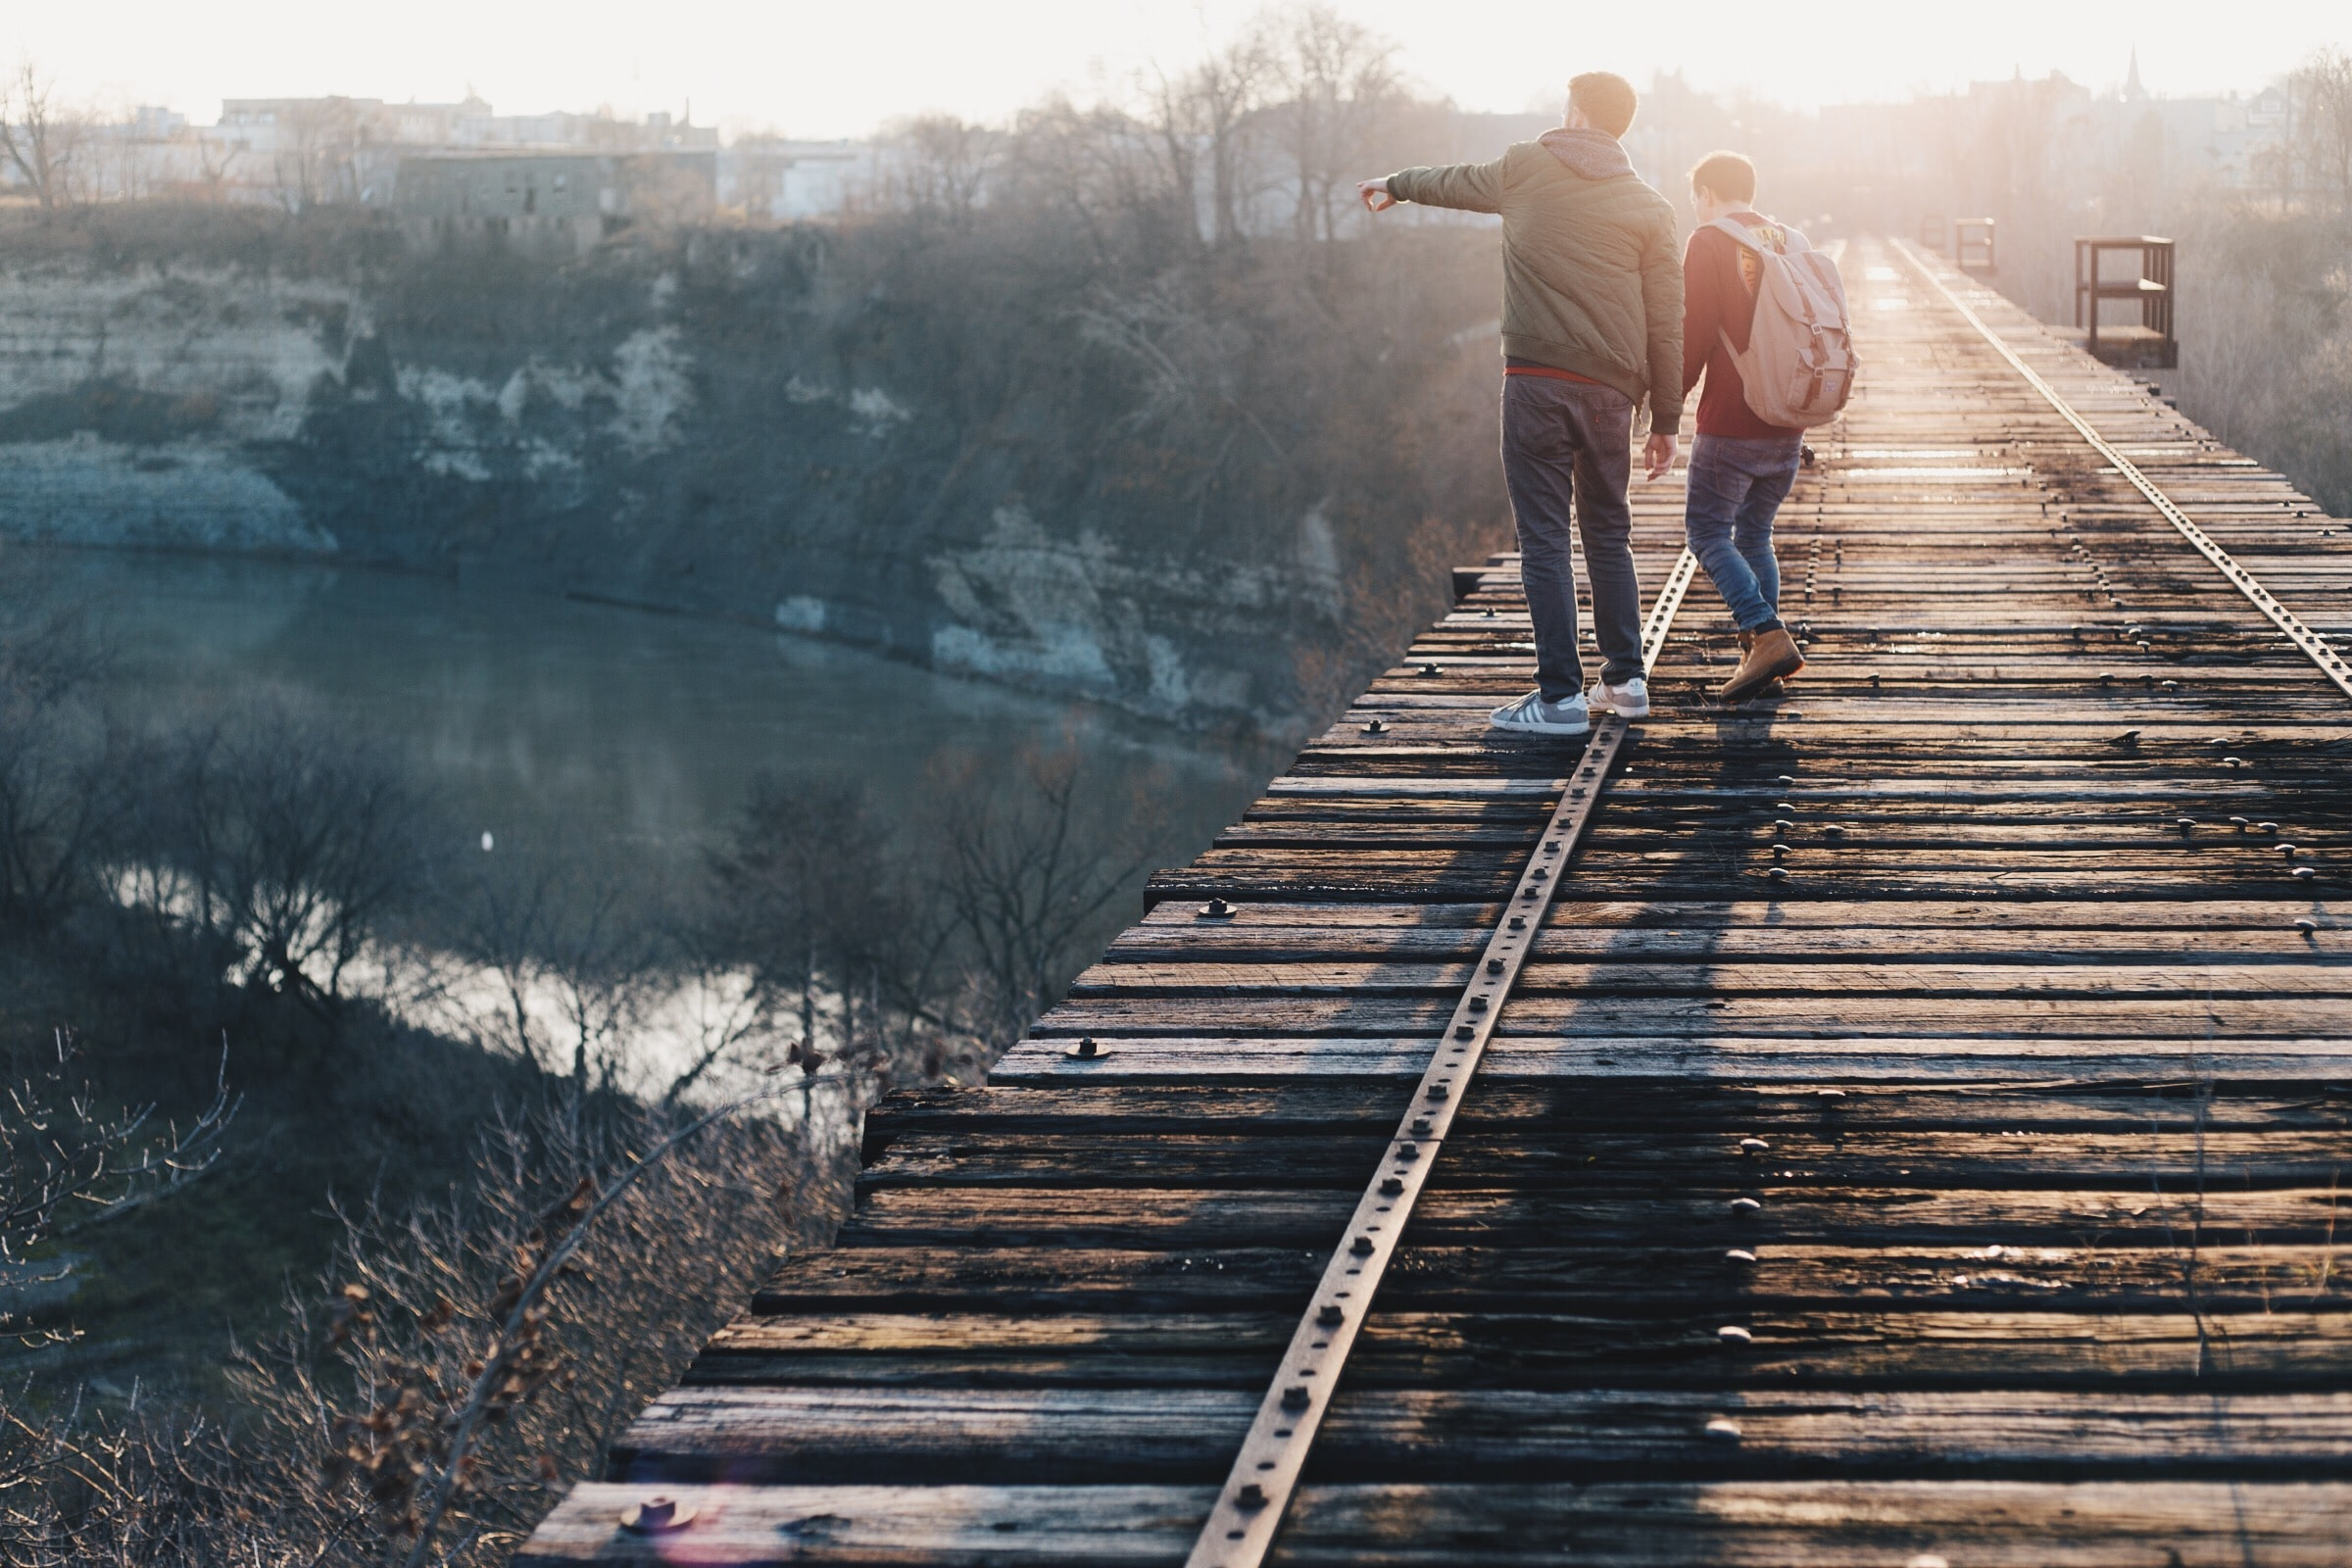 two boy standing on brown train track bridge near river